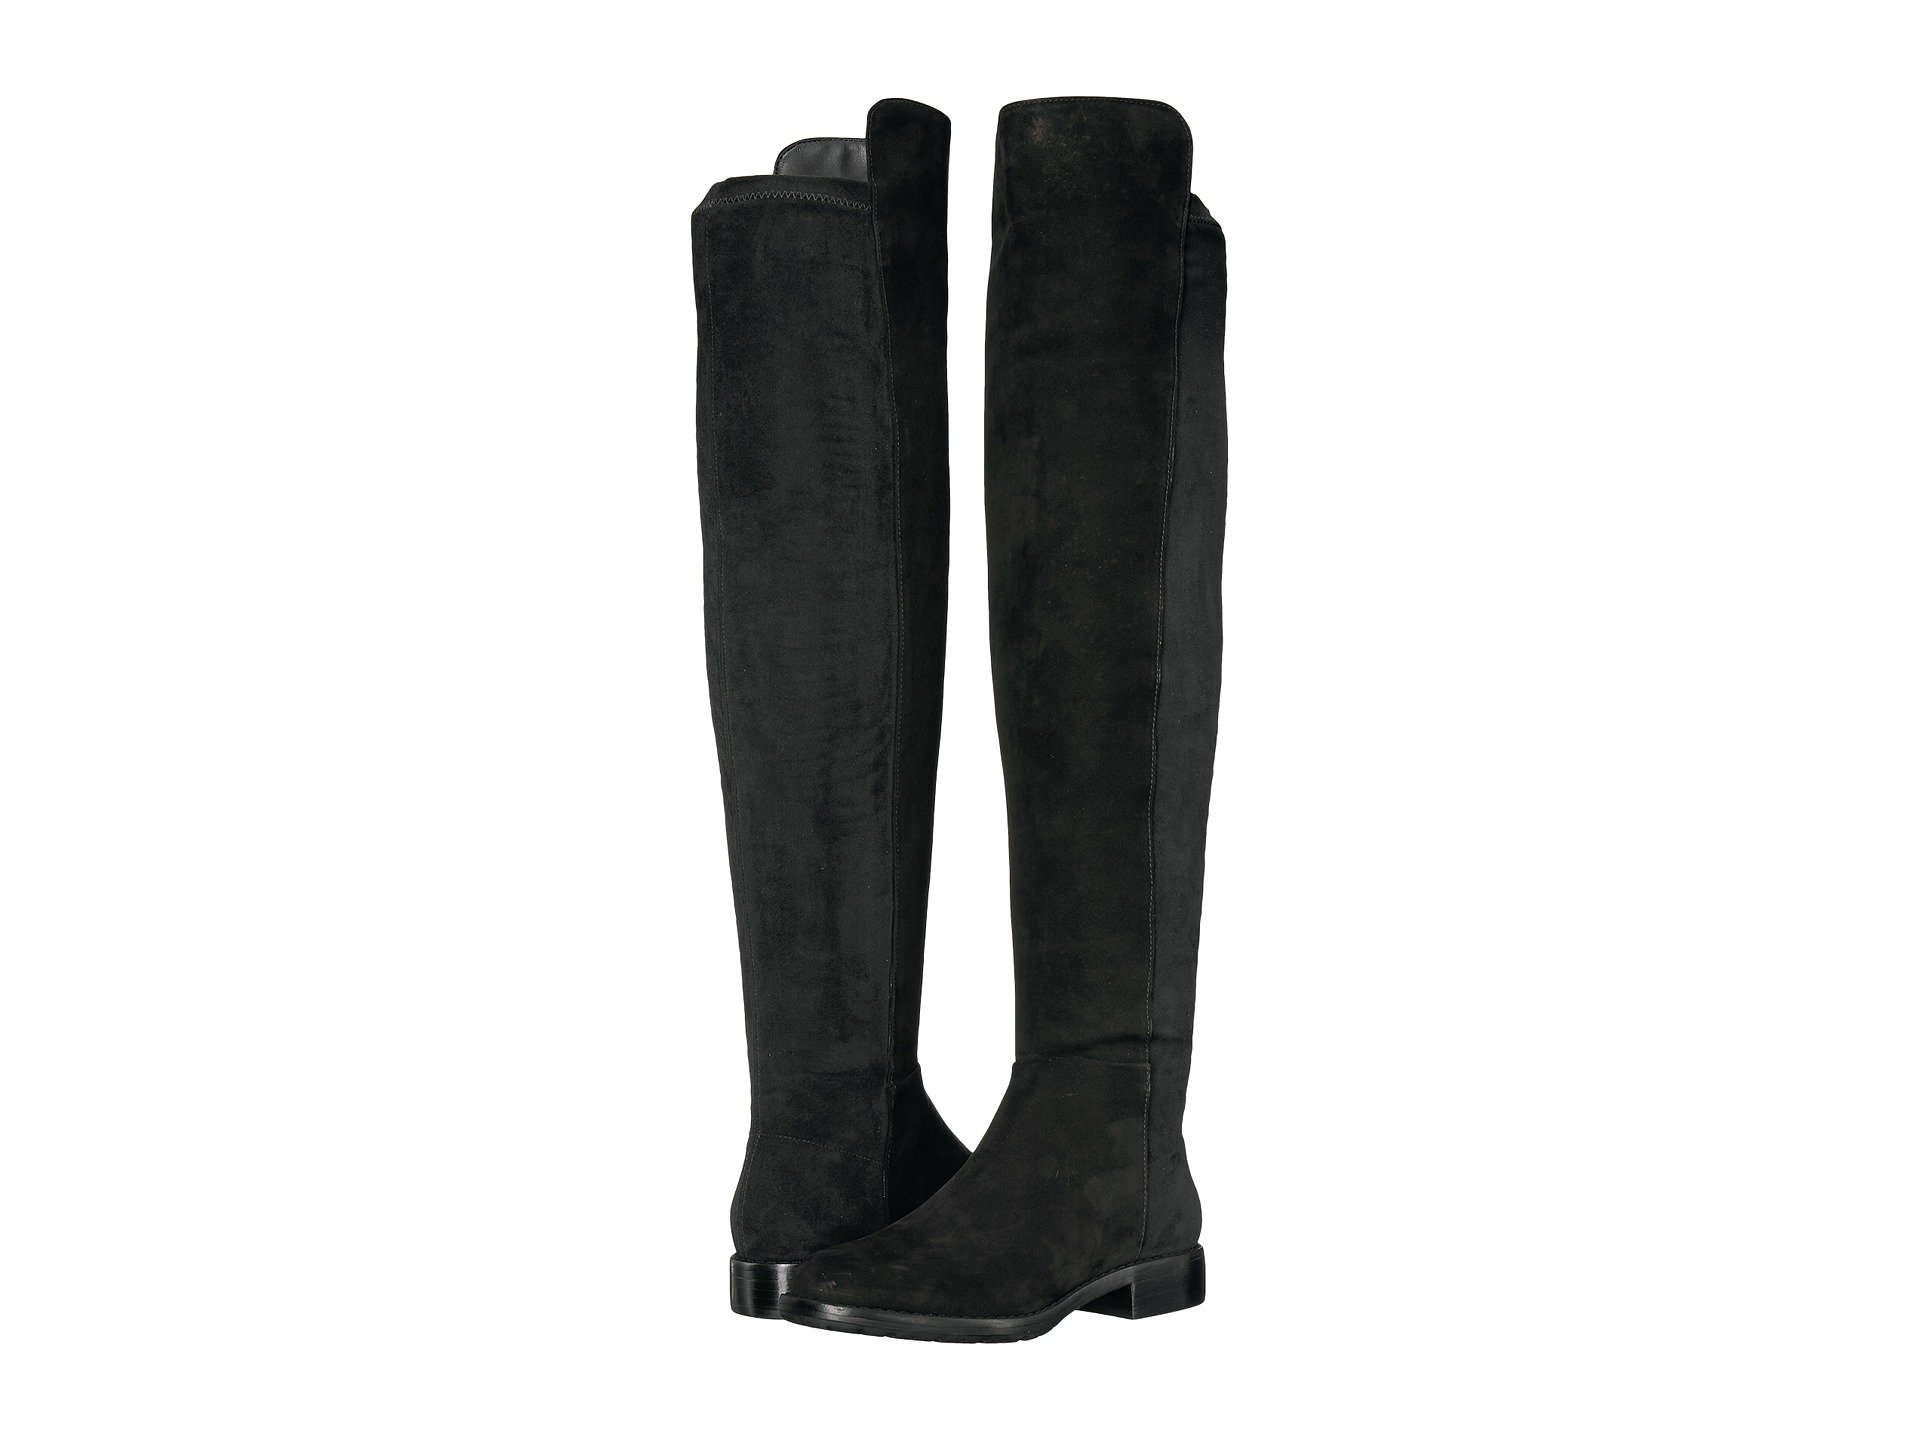 MASSIMO MATTEO Side Zip Stretch Tall Boot, Black